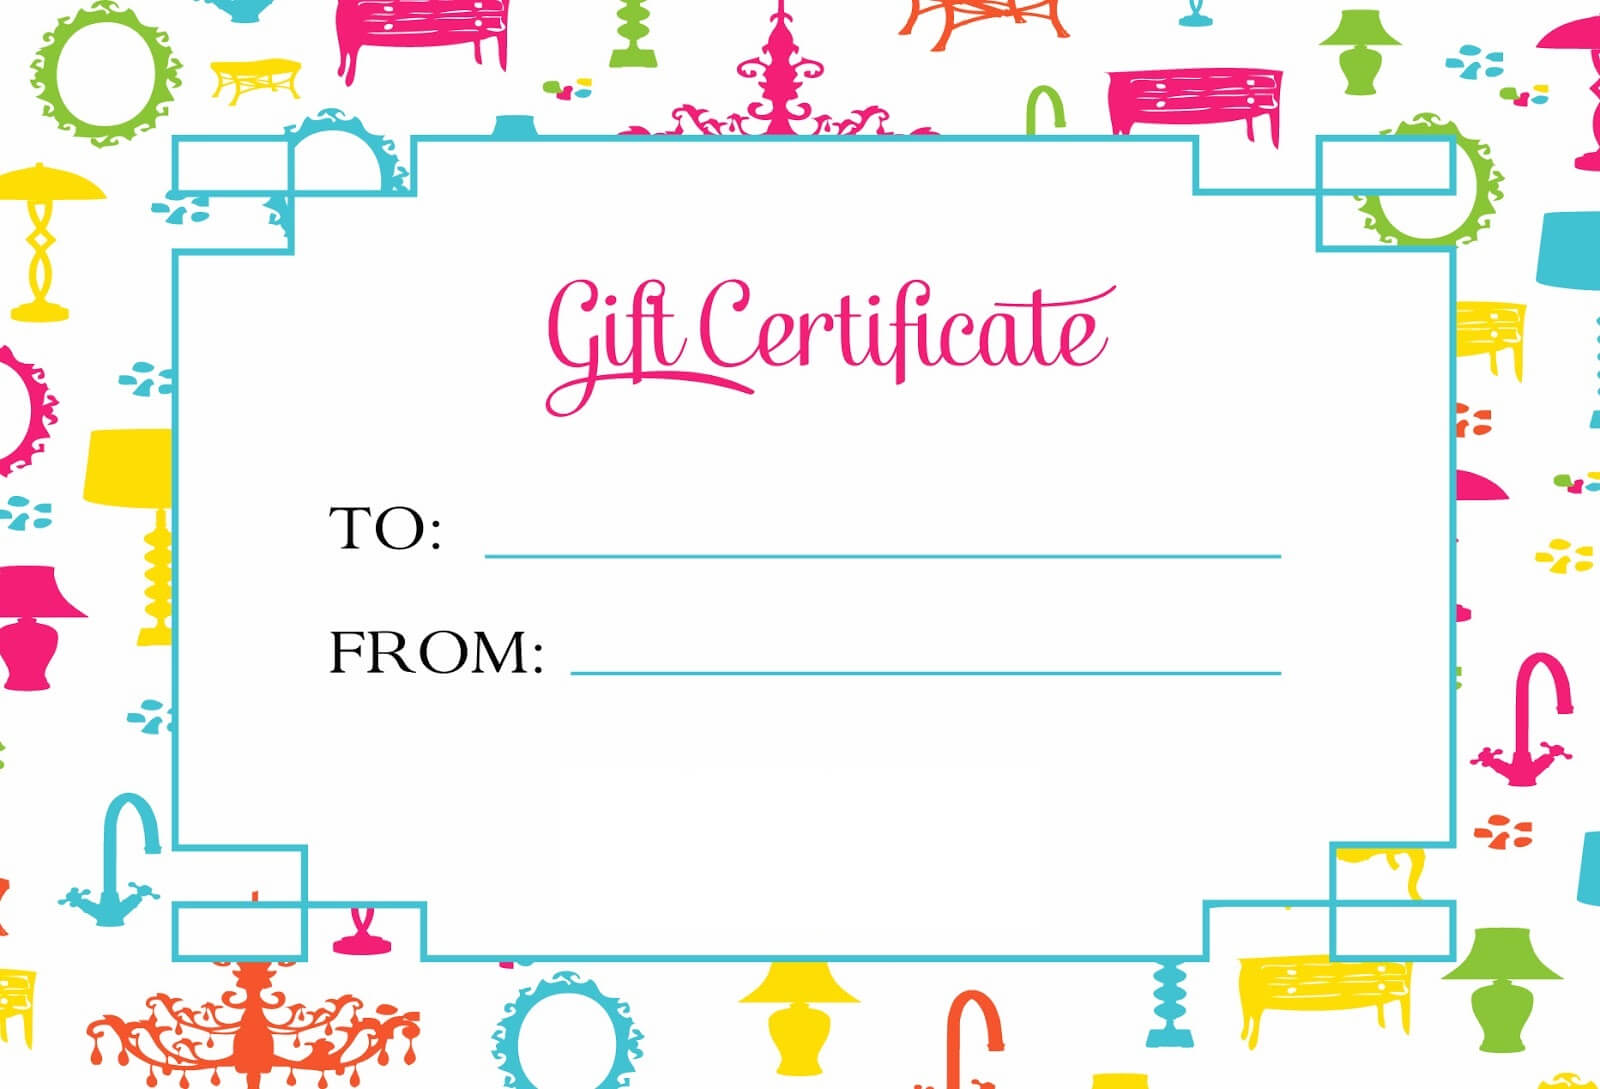 Gift Certificate Template For Kids Blanks   Loving Printable Throughout Kids Gift Certificate Template